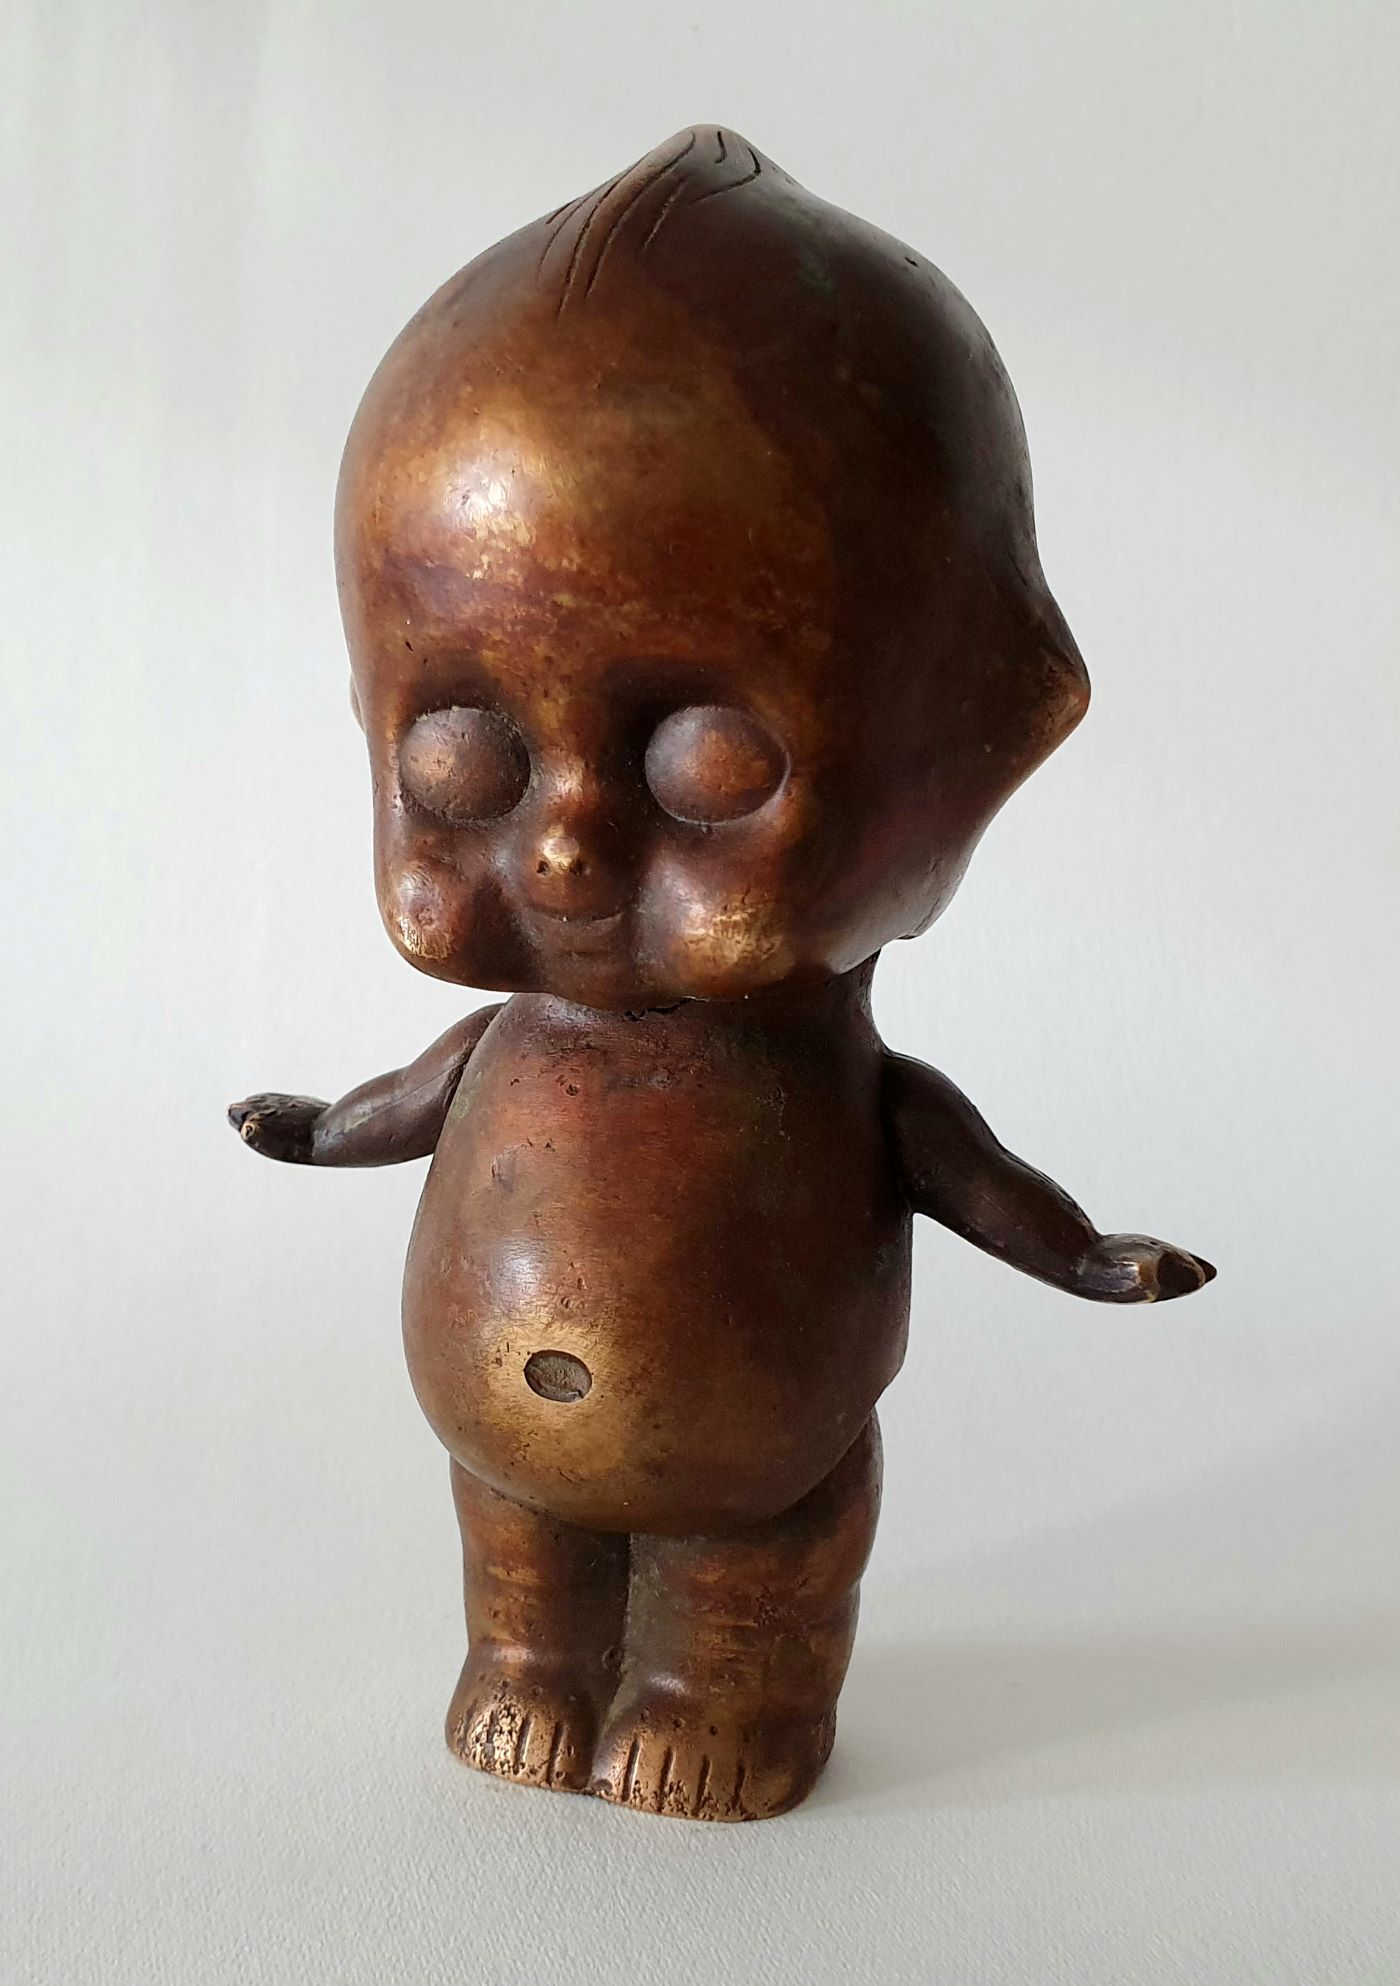 Rediscovered_Childhood_Golden11_x_8cm_Bronze_web